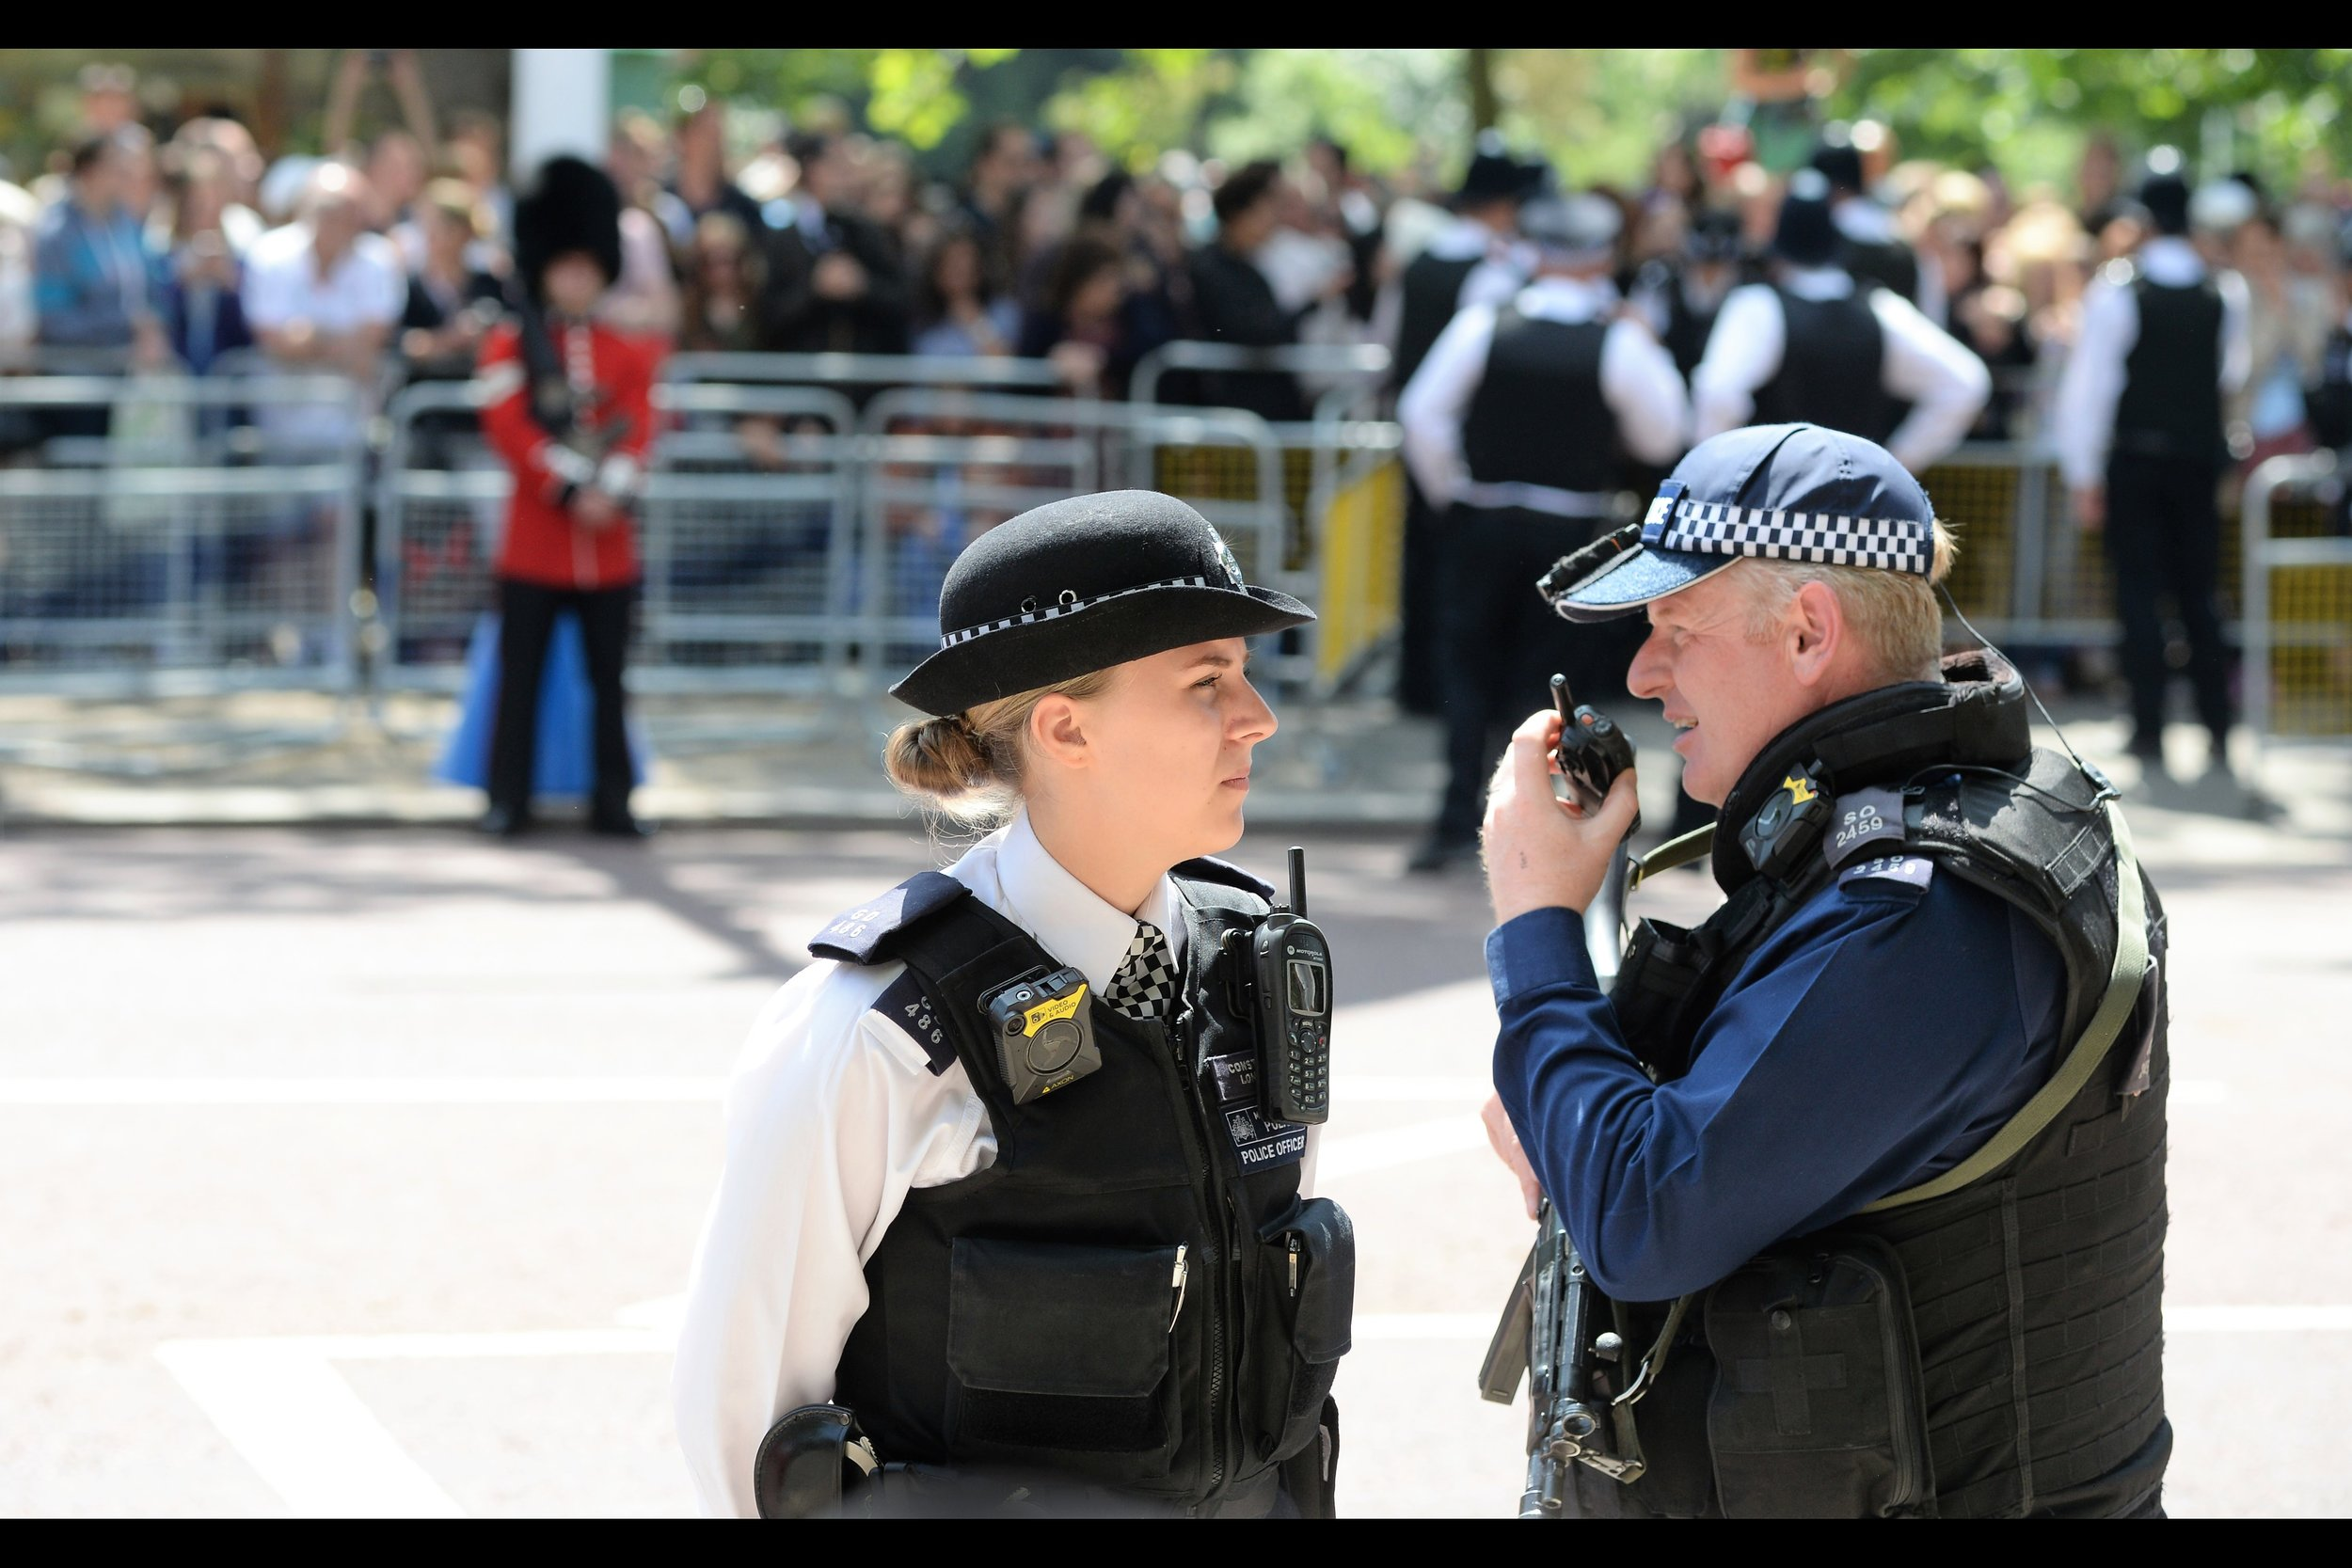 """""""I'm looking at a cute blonde standing to the east, wearing a police uniform.... I kinda want to ask her out on a date.... and I probably shouldn't be talking this loudly directly in front of her. Cameron out."""""""